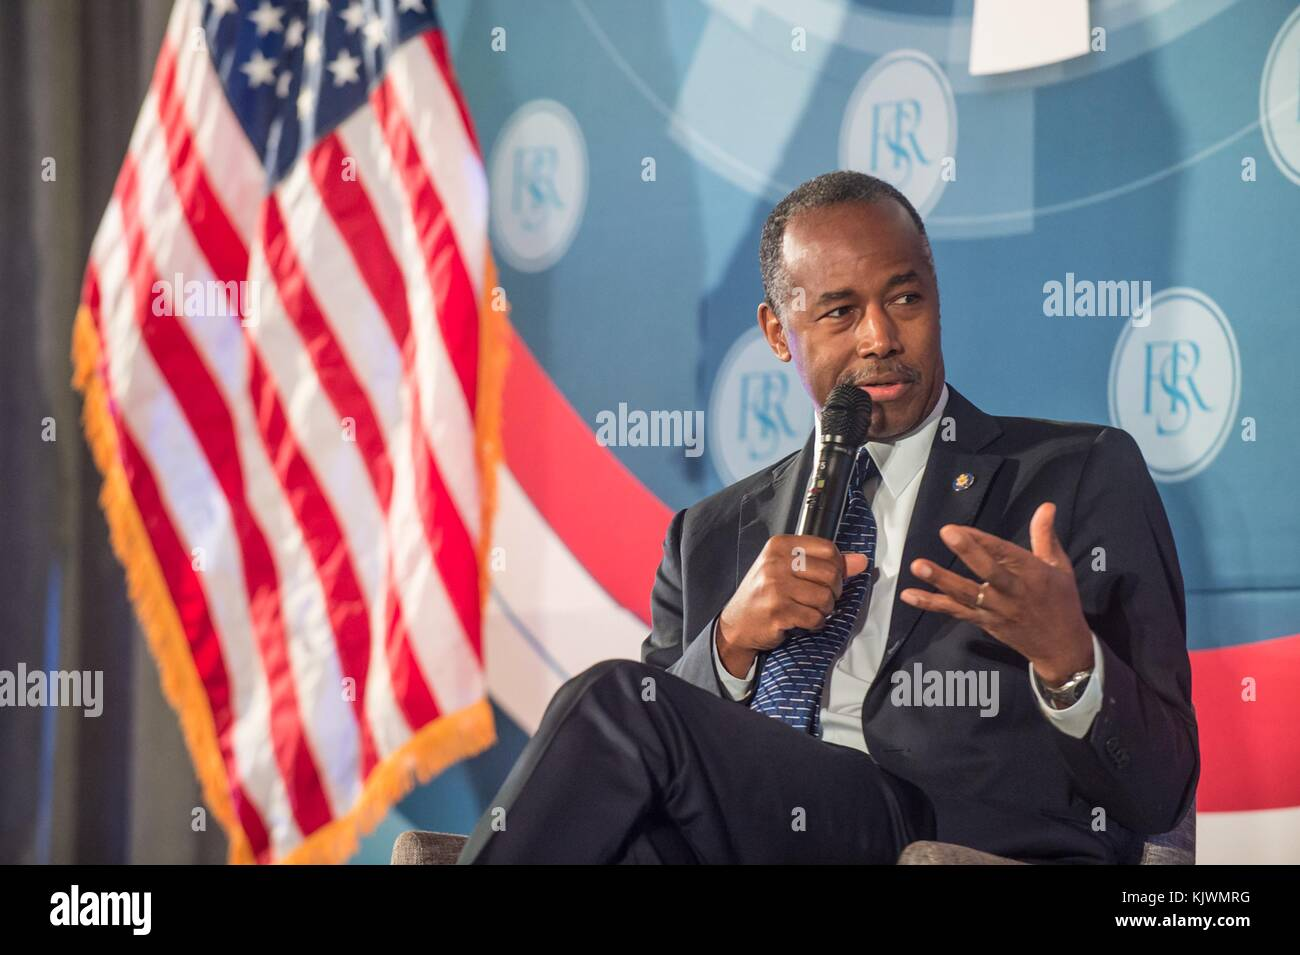 U.S. Housing and Urban Development Secretary Ben Carson speaks during the Financial Services Roundtable Fall Conference Stock Photo